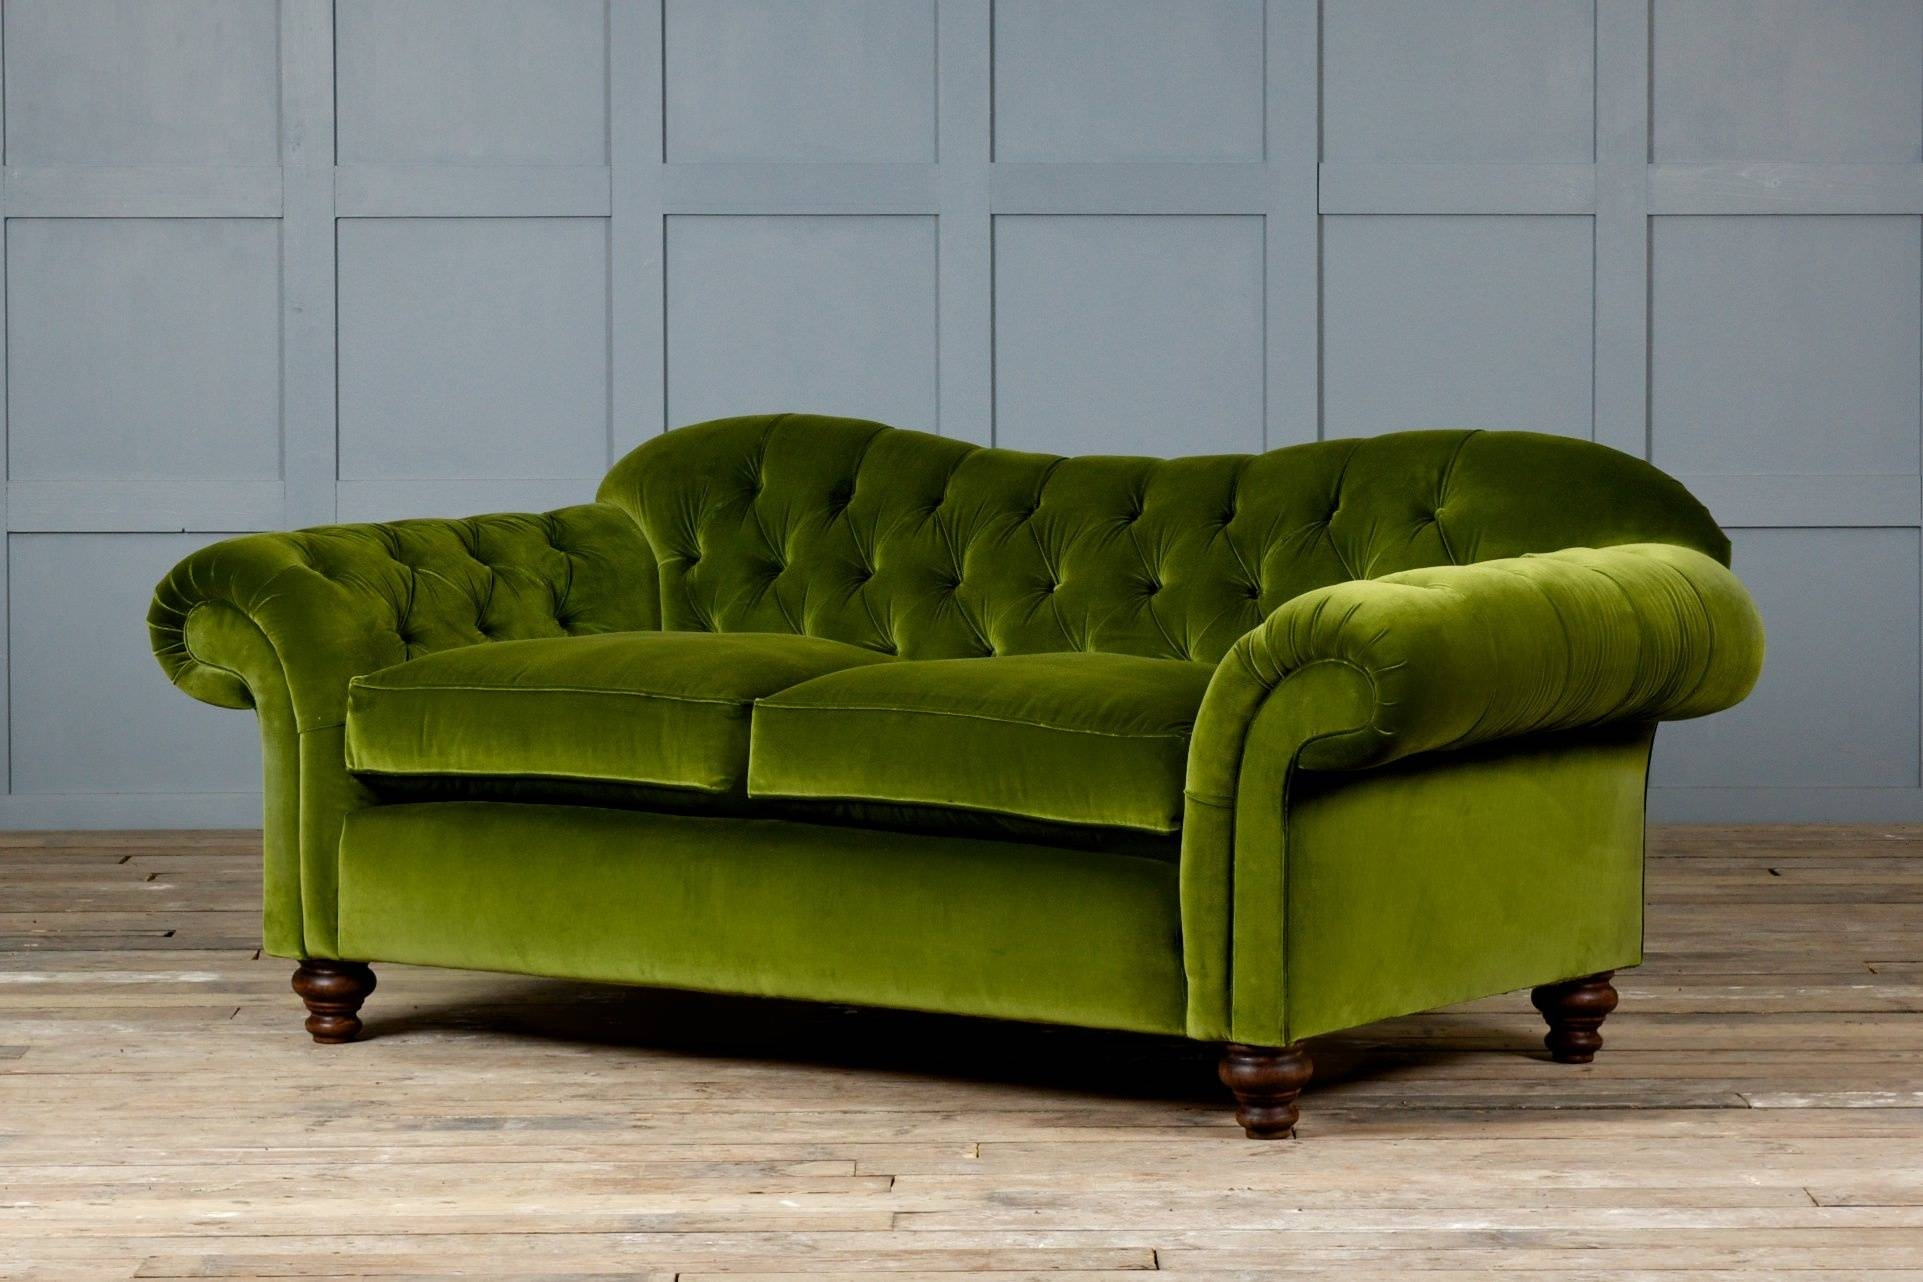 Beautiful Velvet Sleeper Sofa 83 On Modern Sofa Inspiration With pertaining to Tufted Sleeper Sofas (Image 2 of 15)